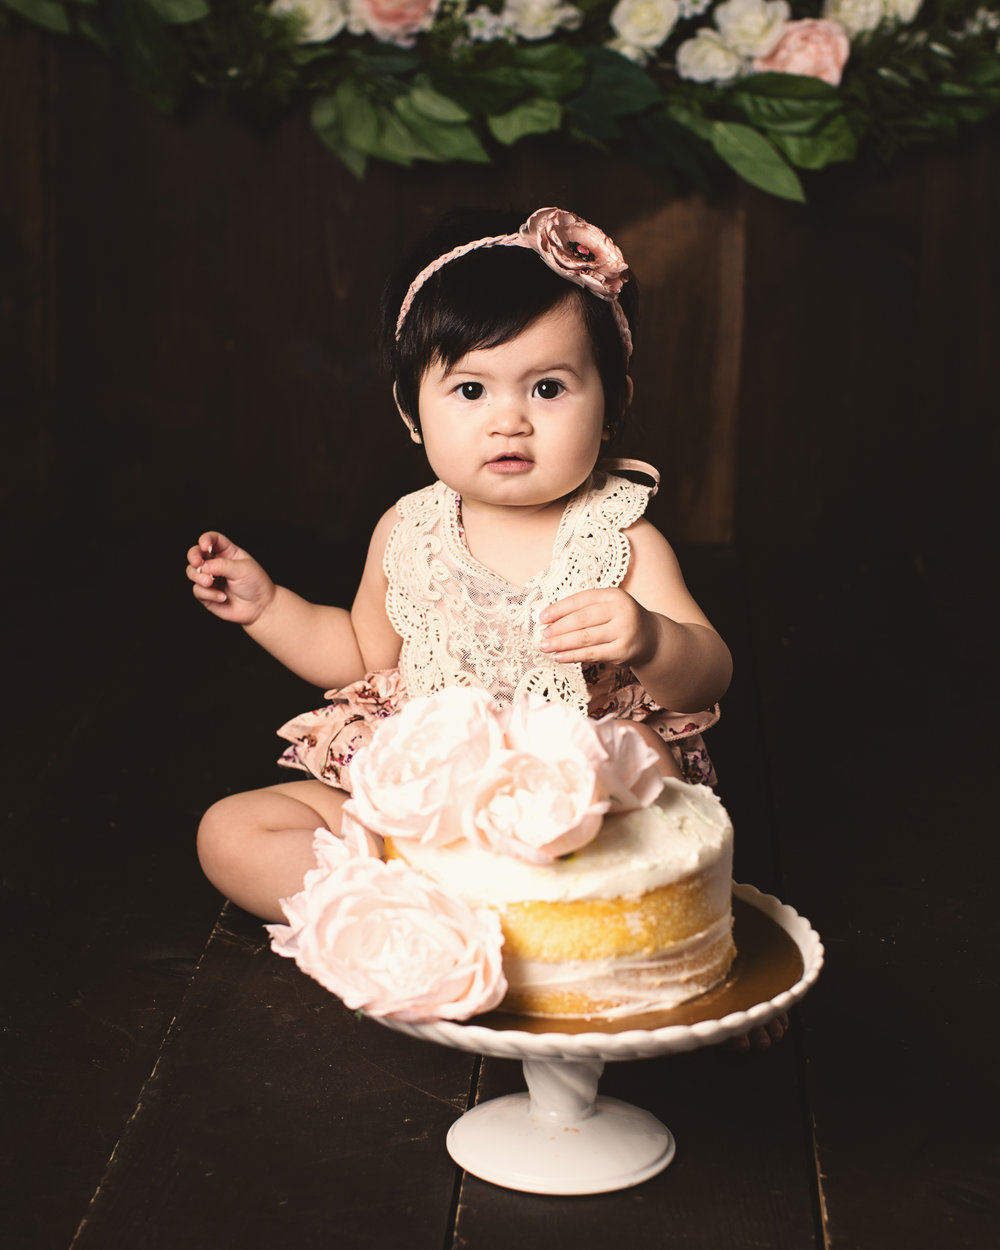 Worcester_cake_smash_photographer_boston_baby_girl_photos_one_year_portraits4.jpg